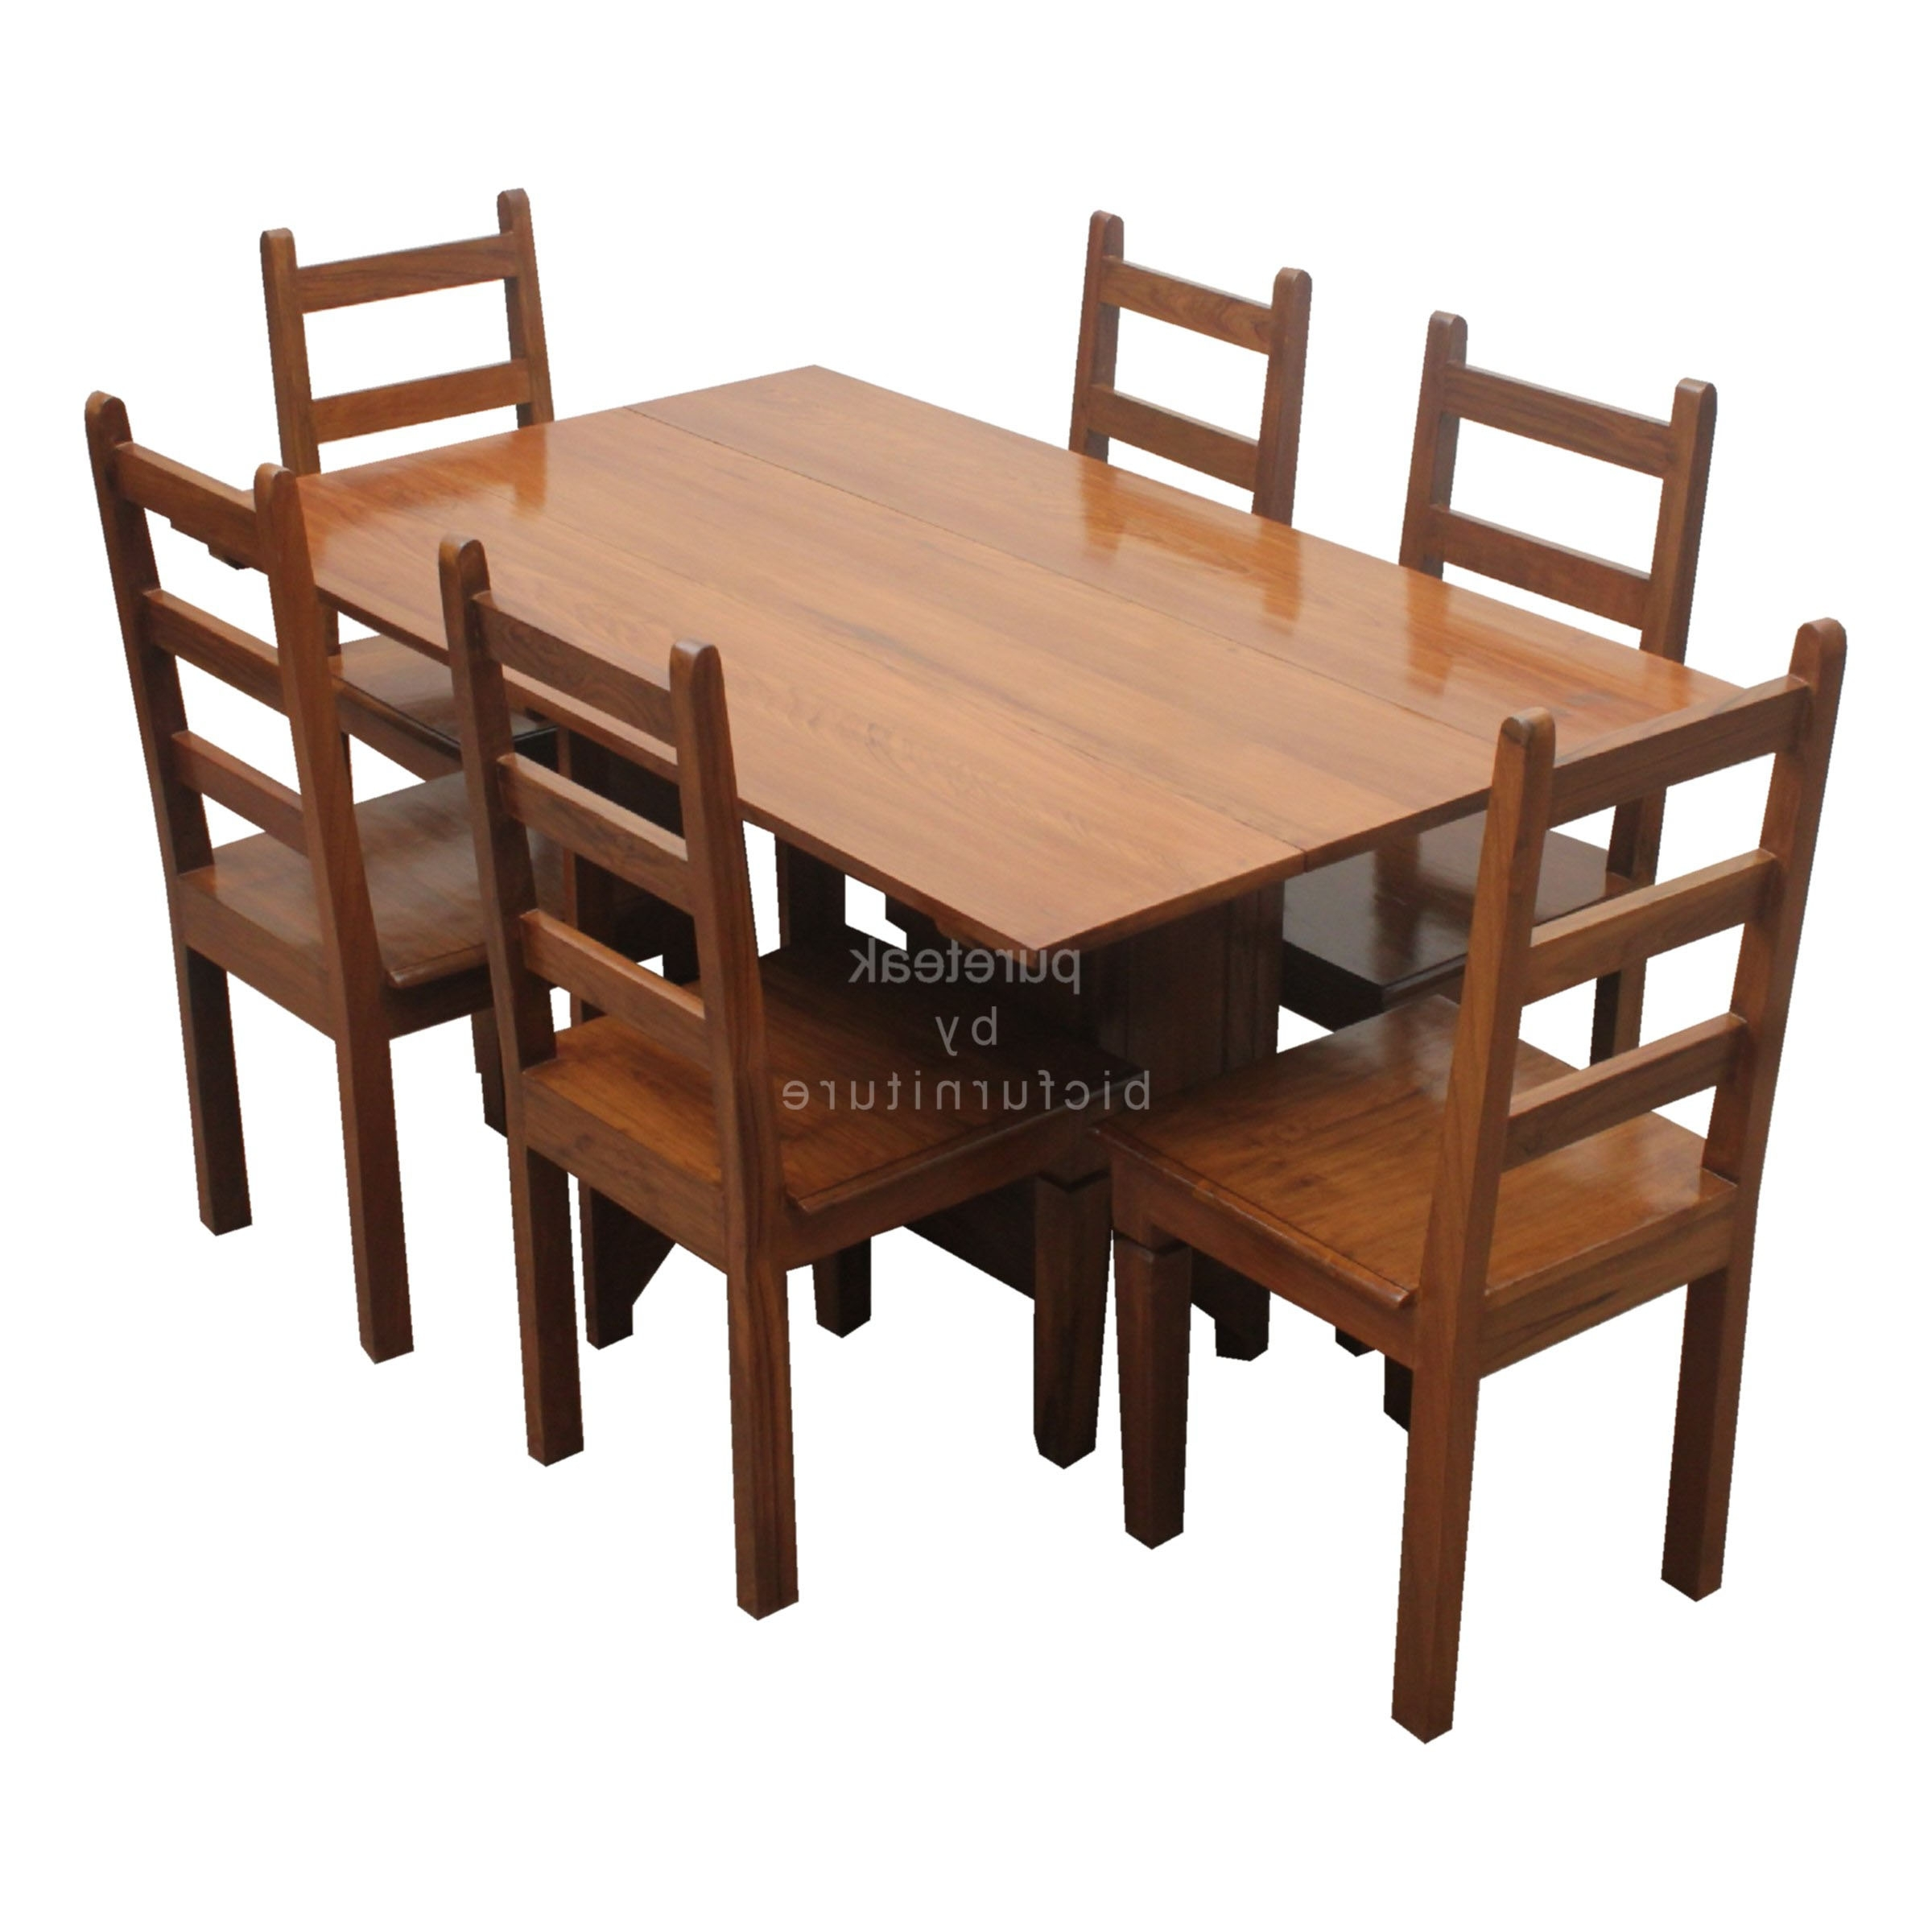 Best And Newest Six Seater Dinning Table Set In Teak Wood (Twd 14) Details (View 8 of 25)